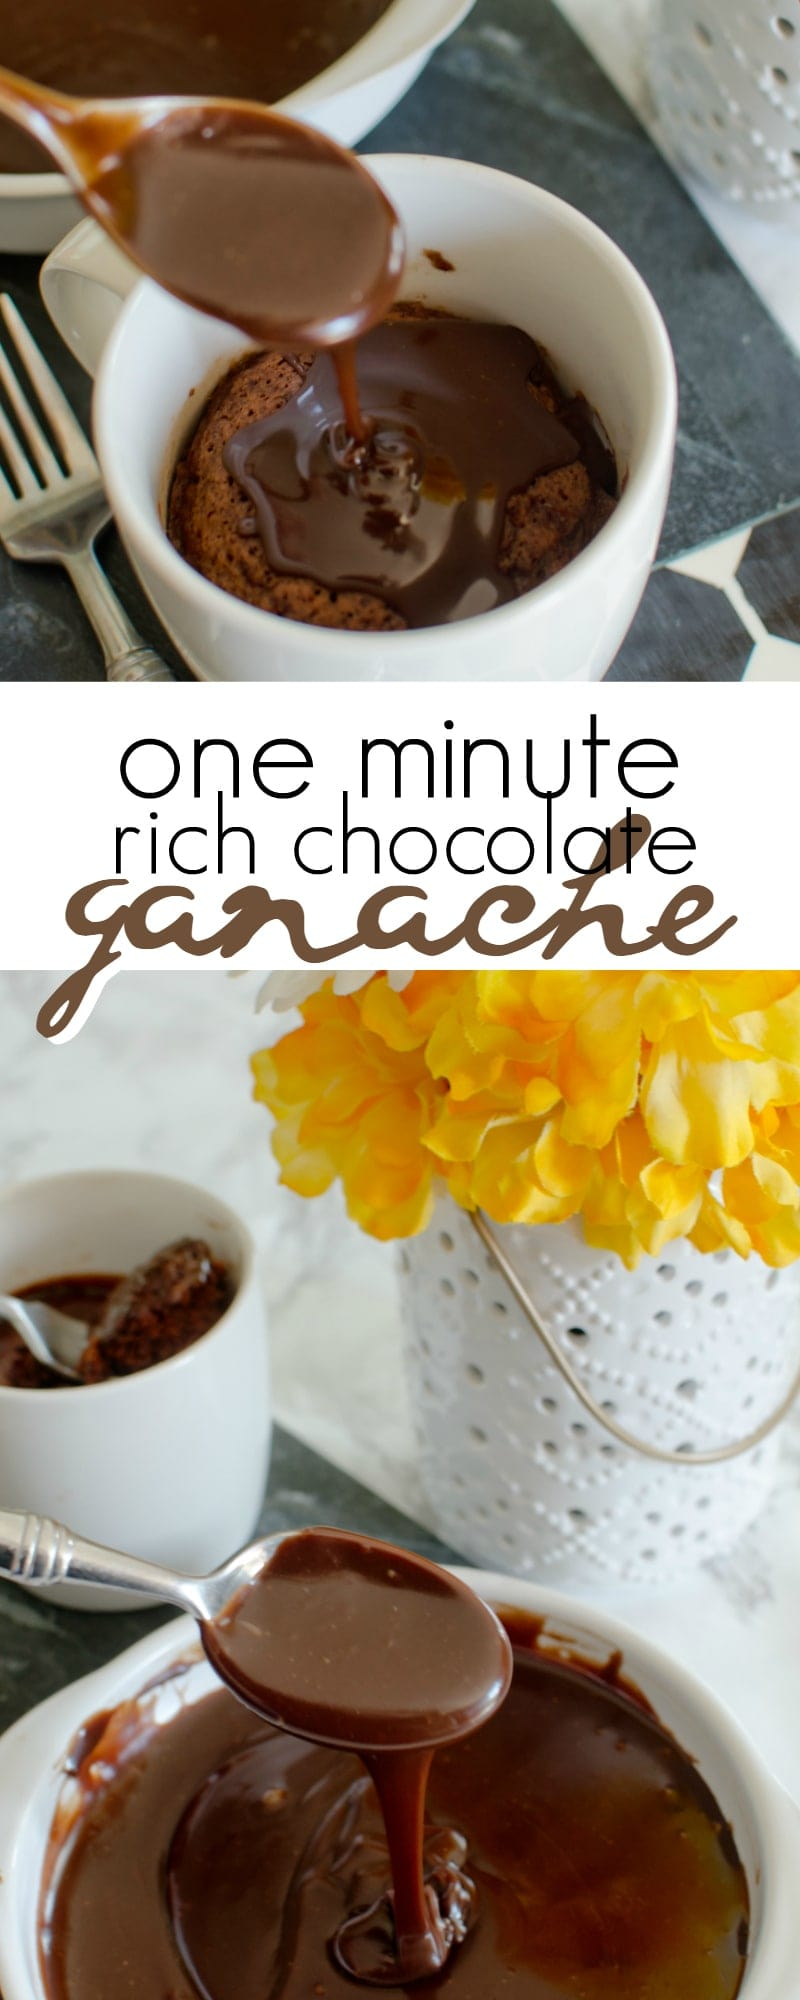 one minute chocolate ganache